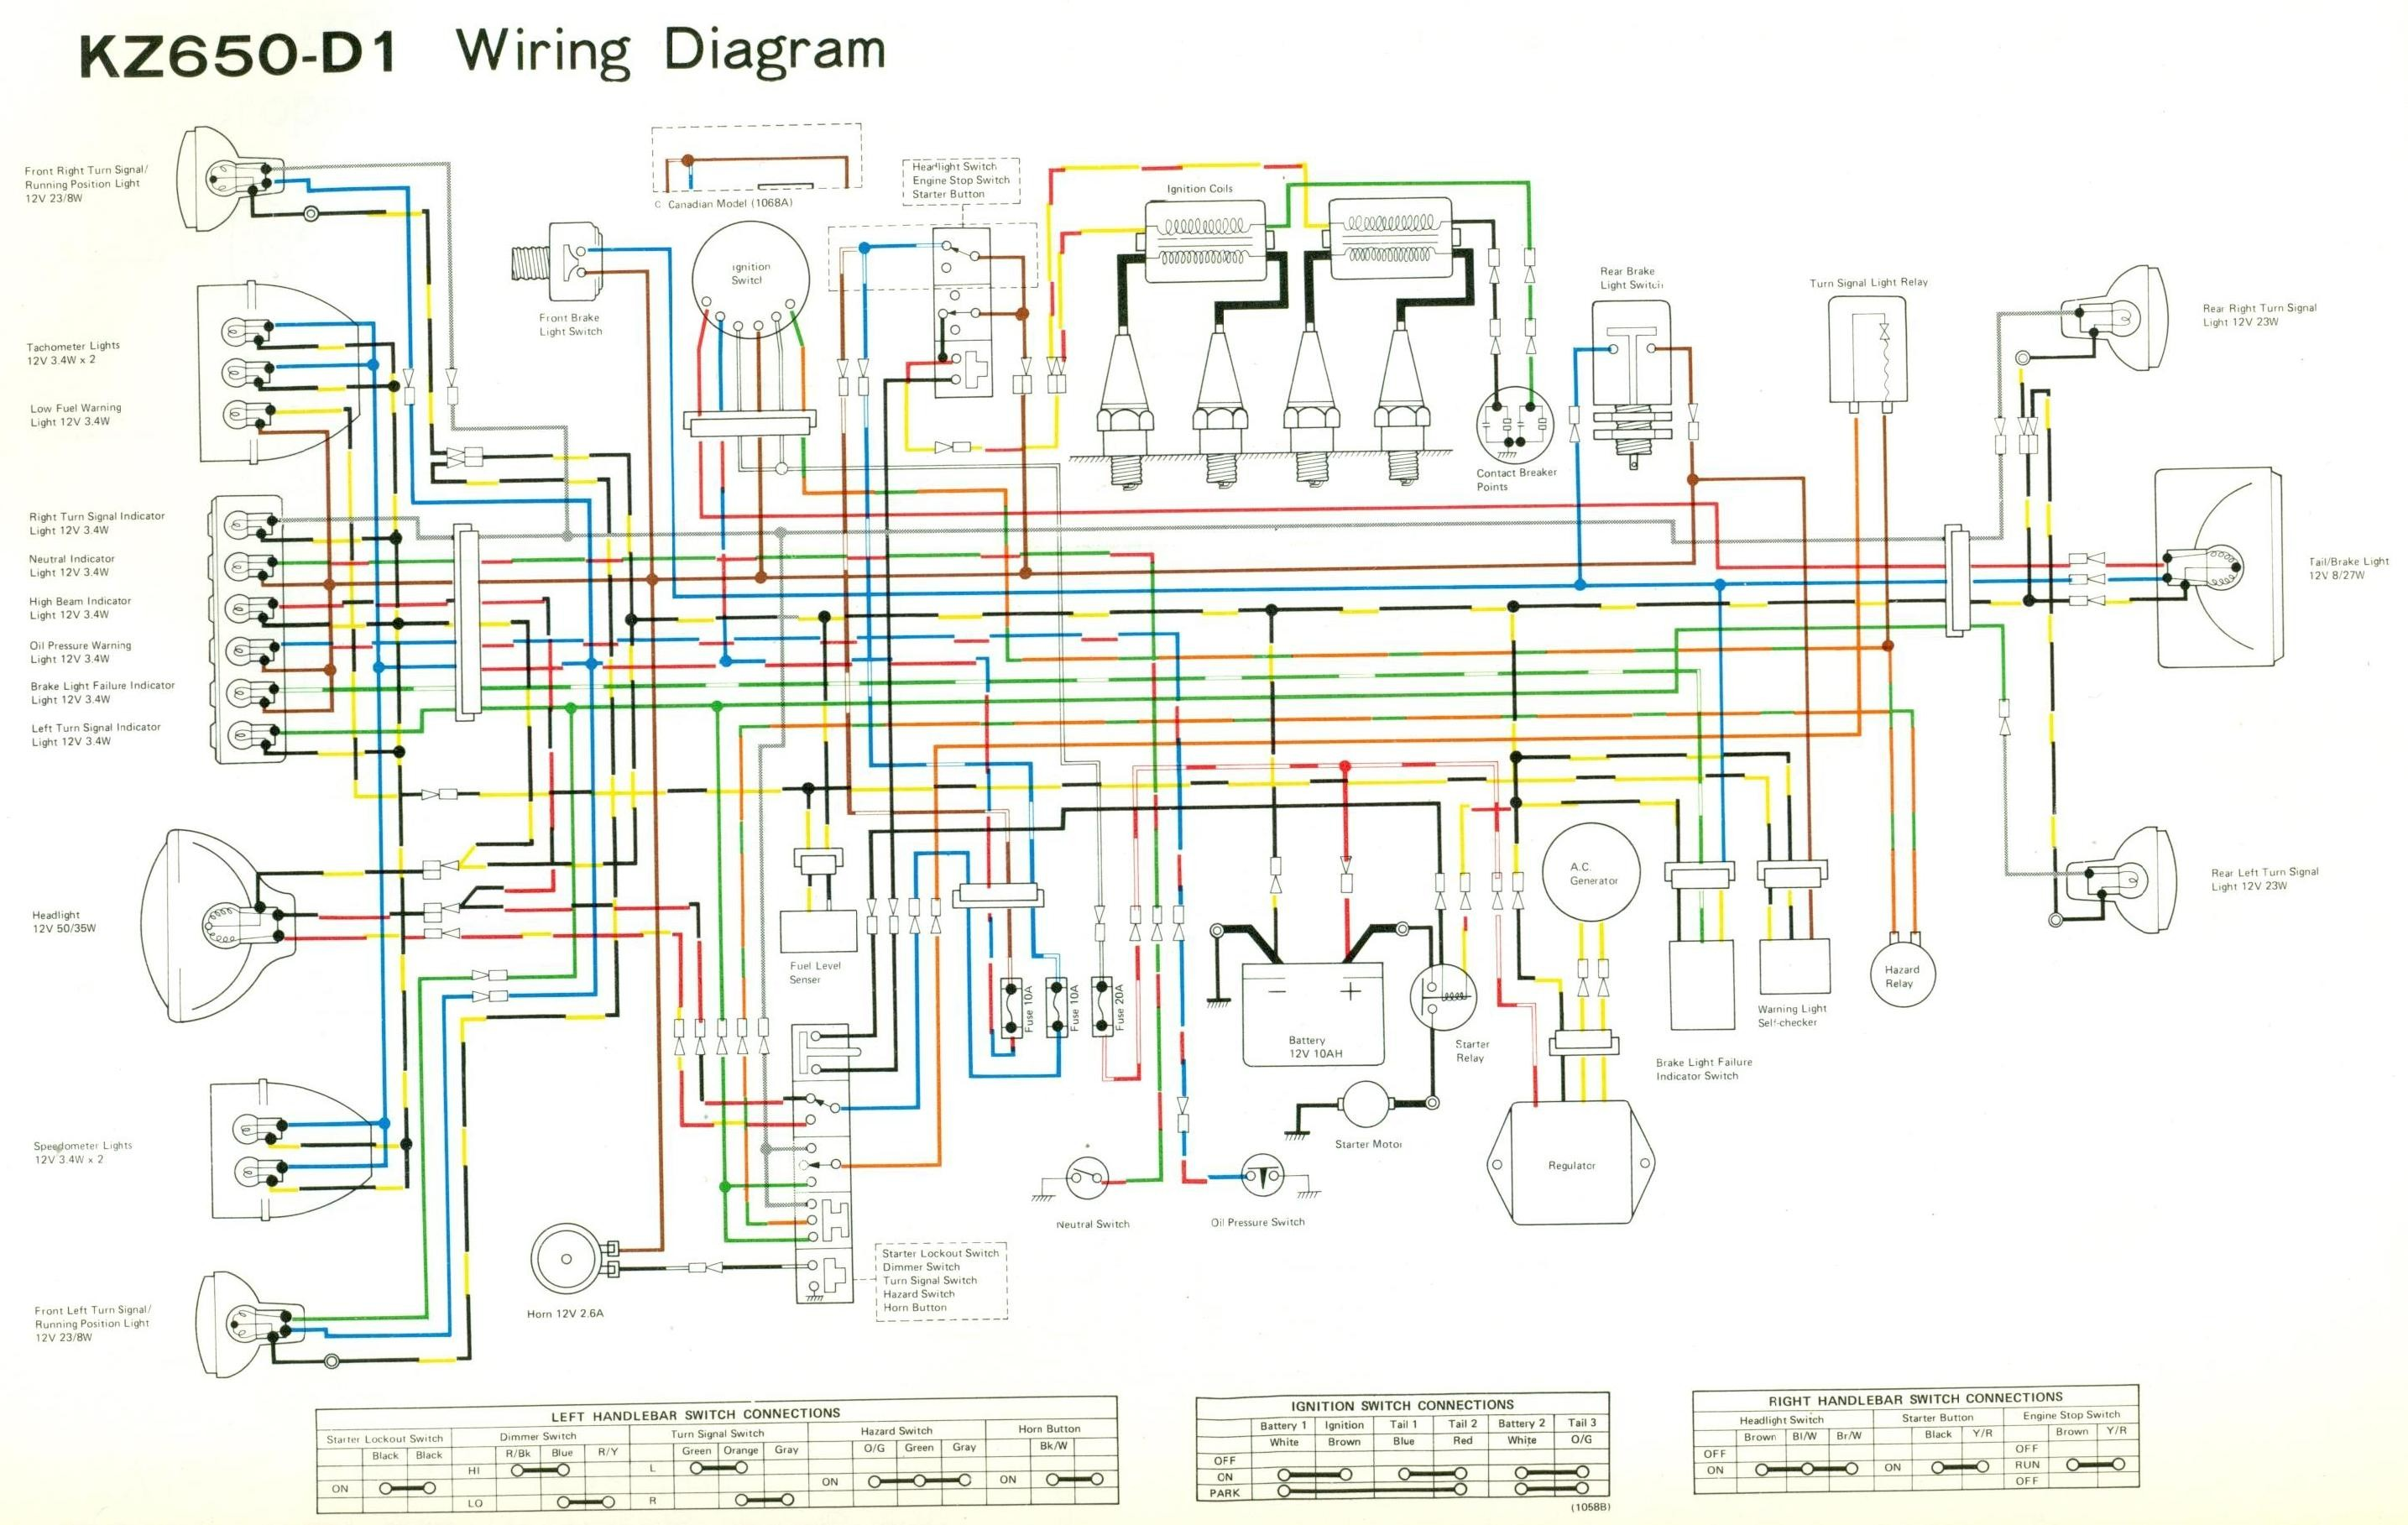 1980 honda cb750 custom wiring diagram sample sequence for web application cb 750 f2 1975 parts